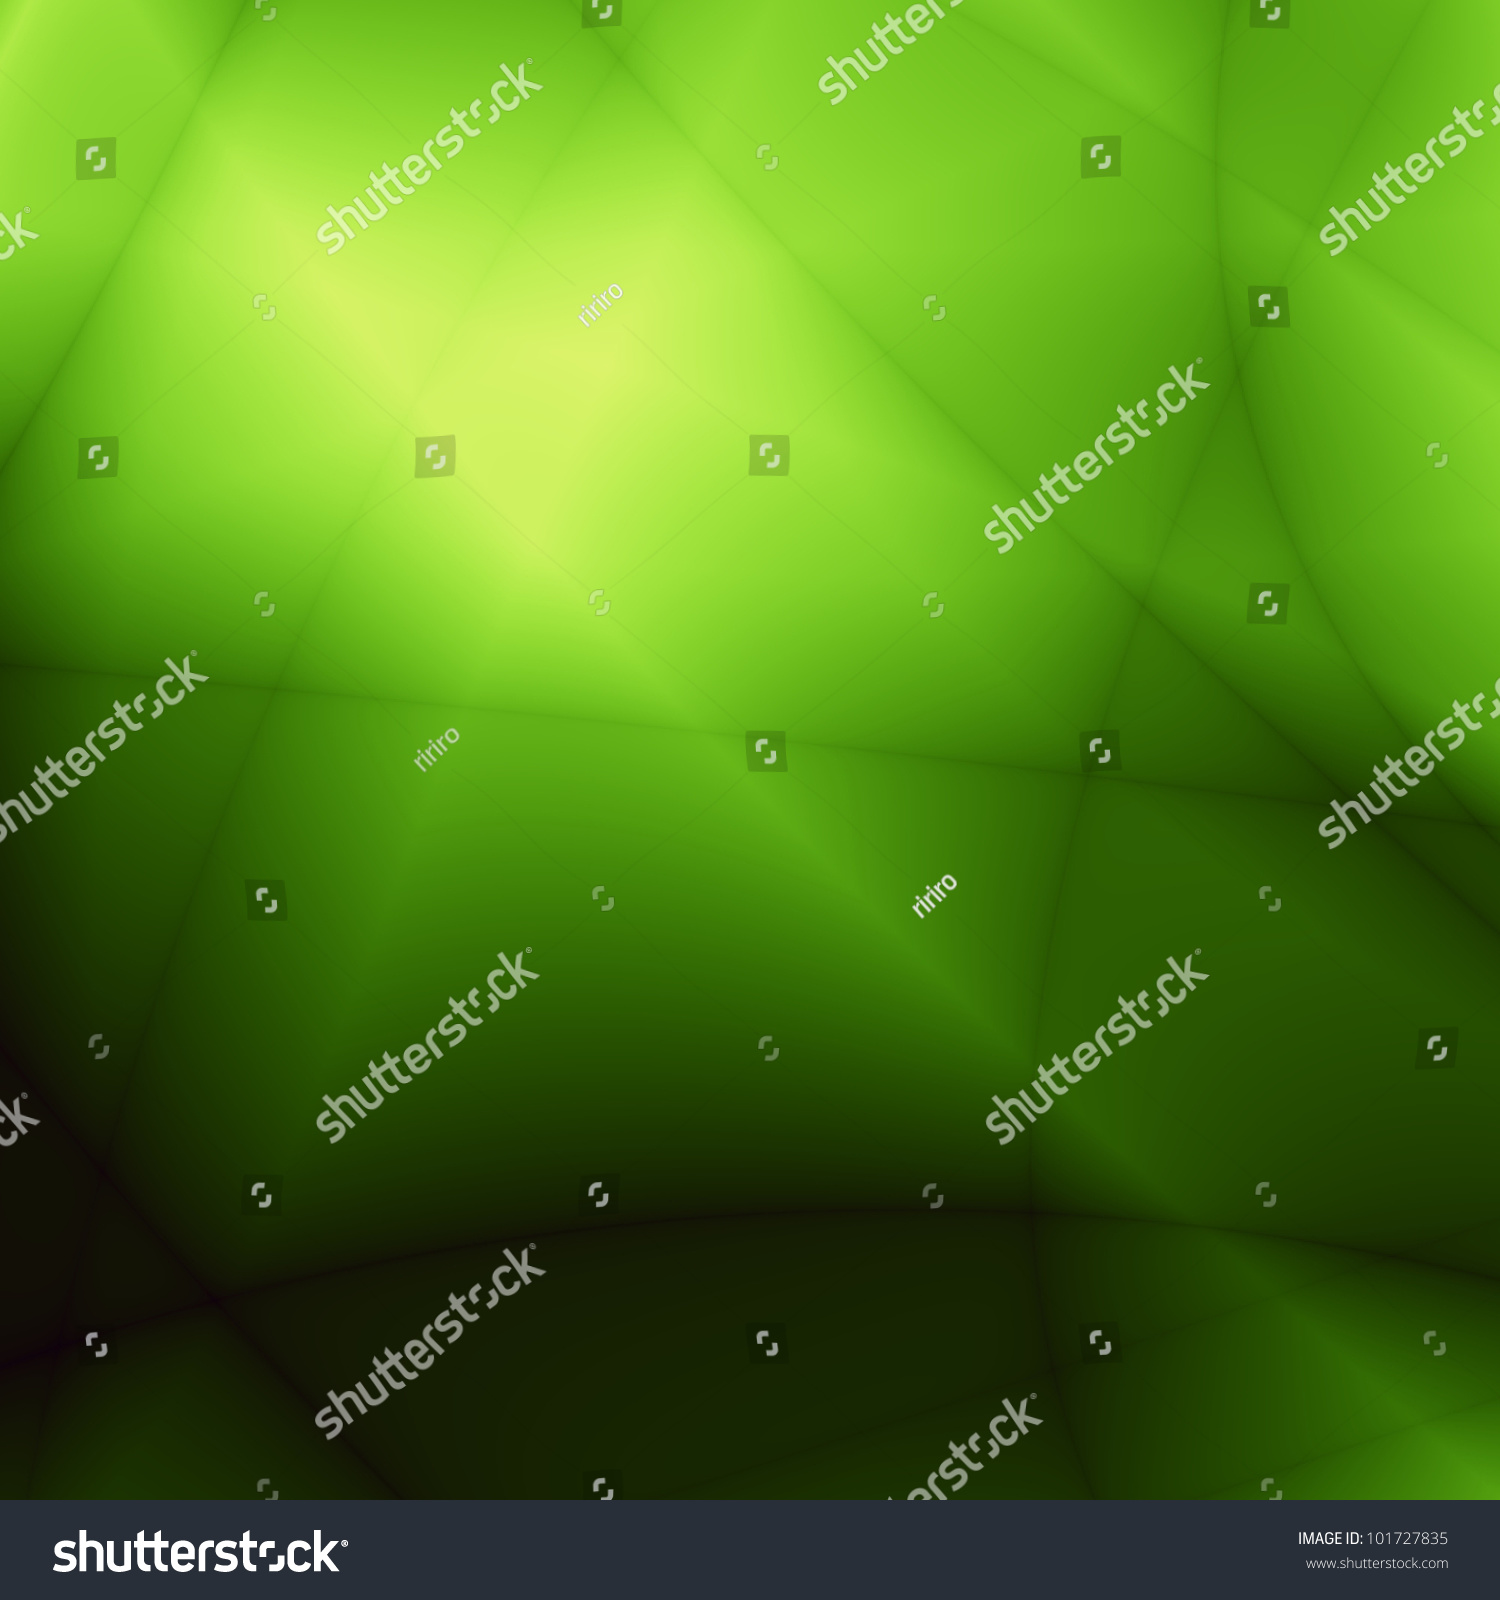 light green wallpaper designs - photo #16